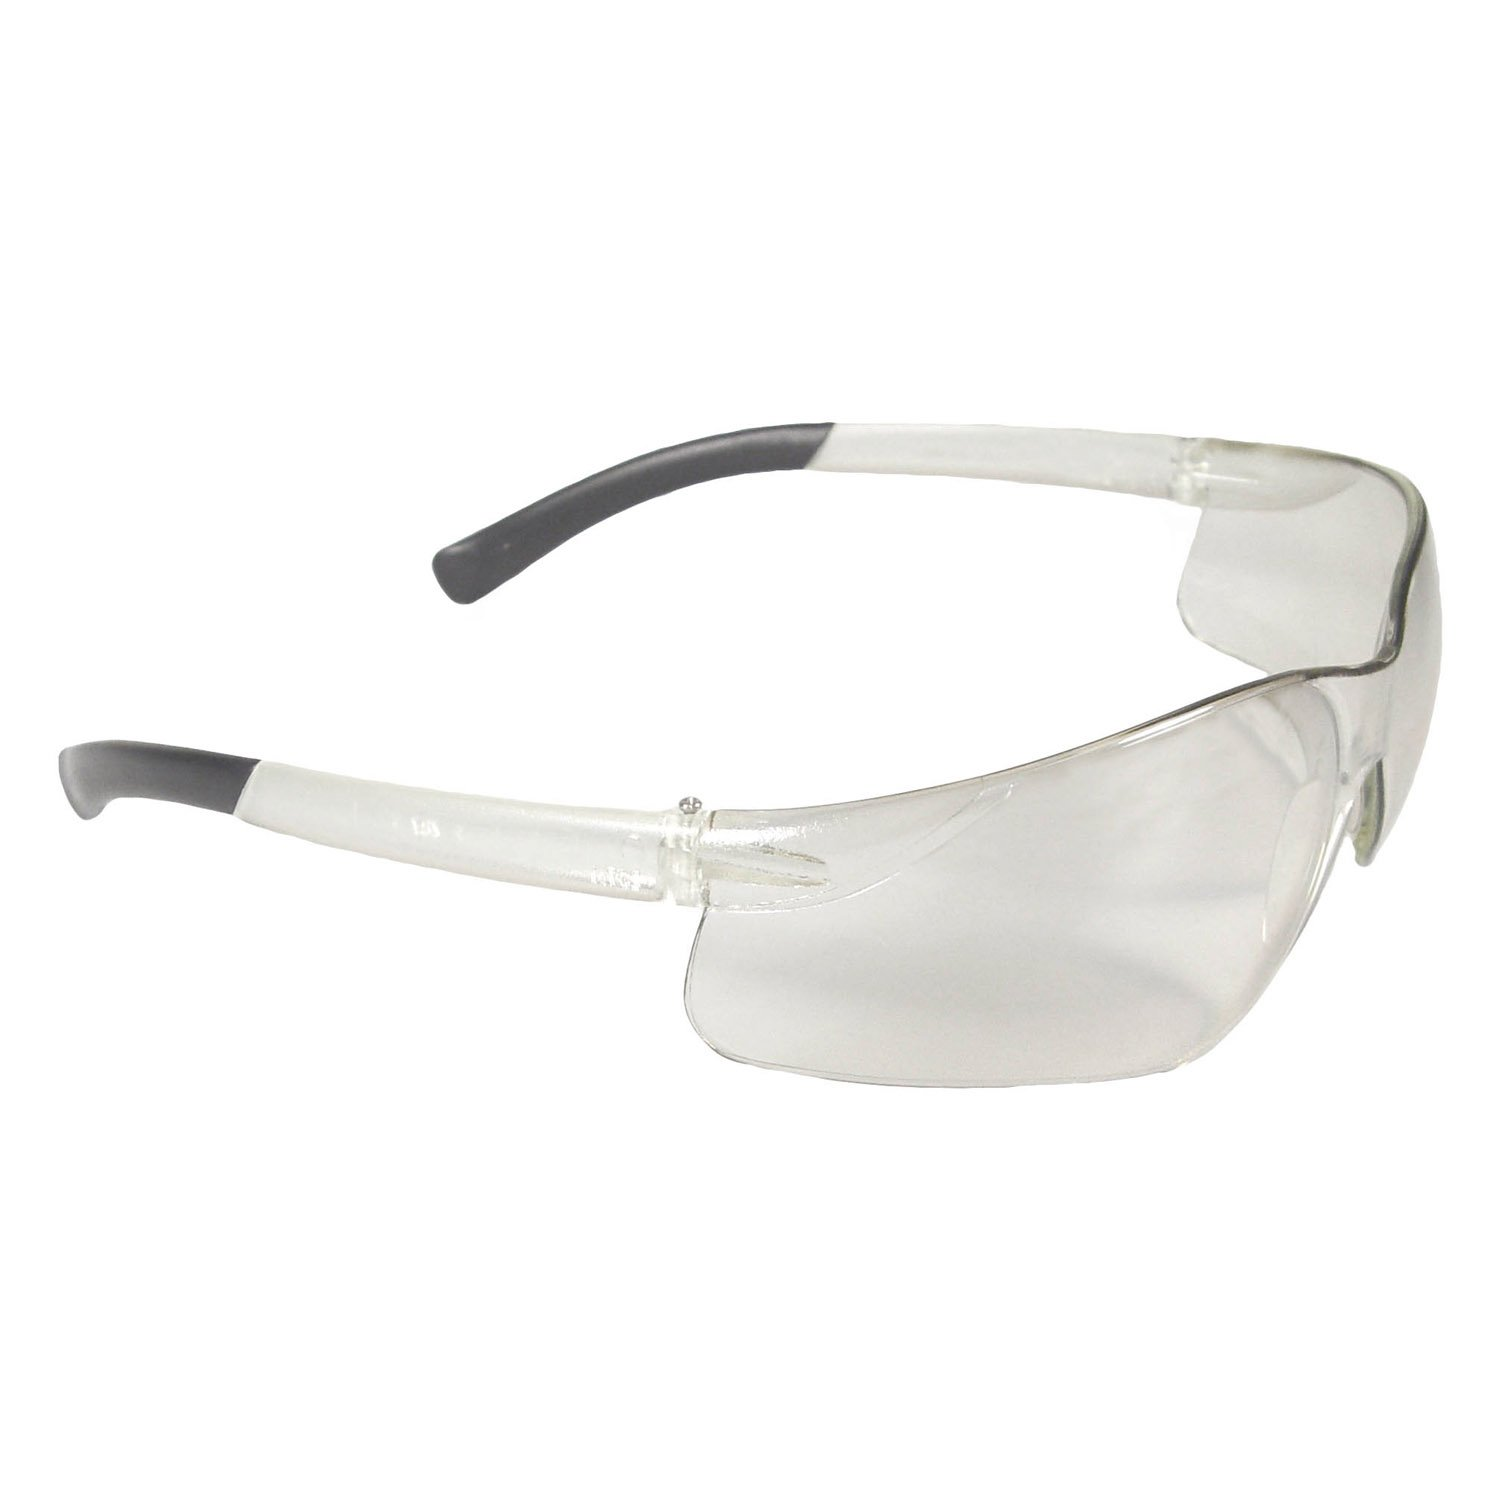 200 Series Safety Glasses